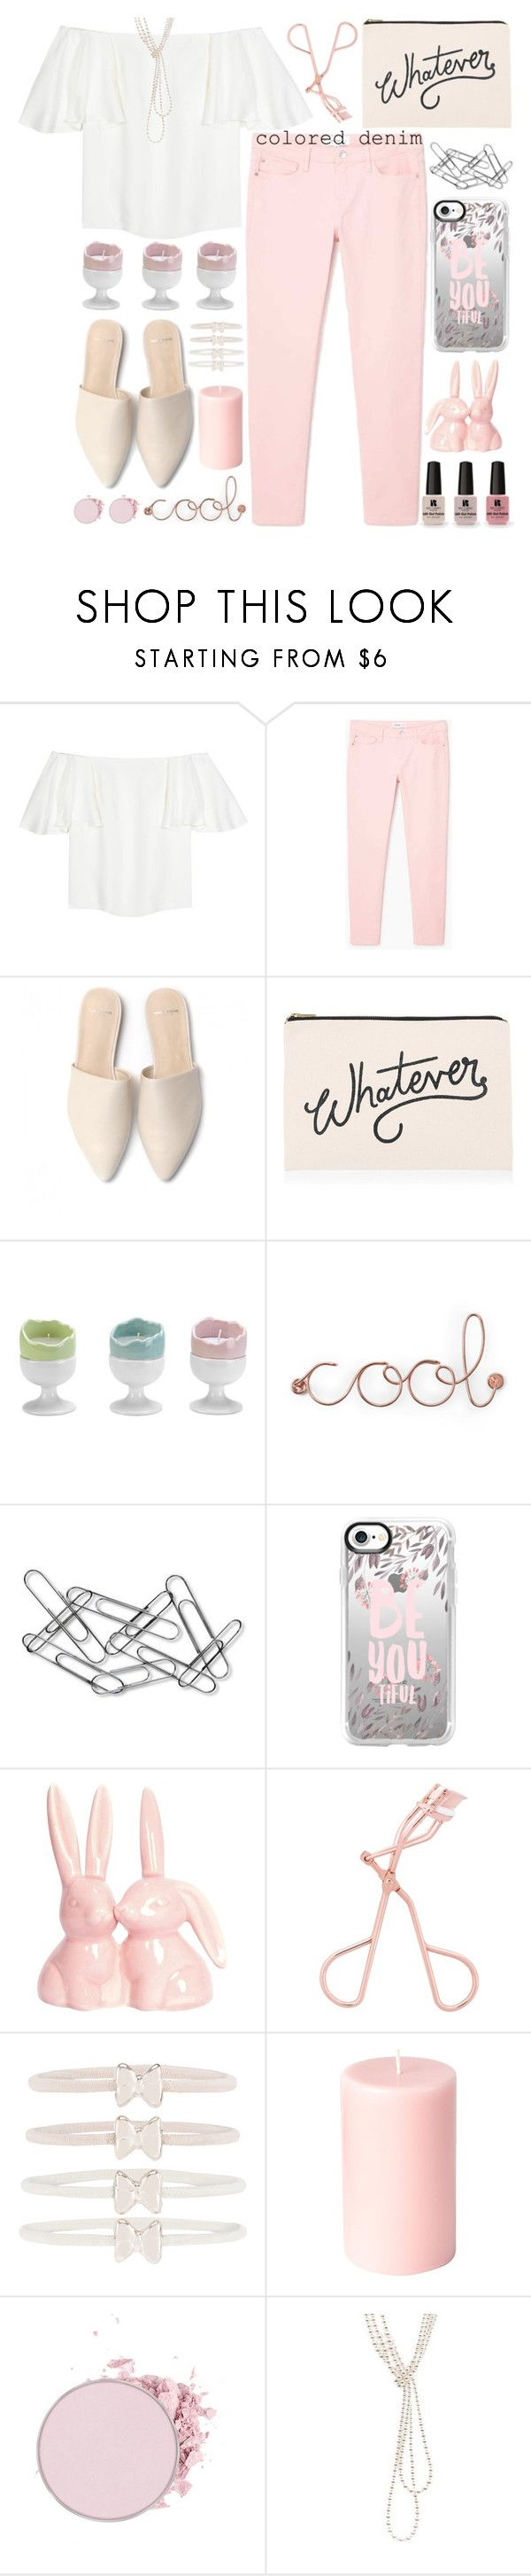 """""""Spring Trend:Colored Denim"""" by grozdana-v ❤ liked on Polyvore featuring Valentino, MANGO, ALPHABET BAGS, Victoria's Secret, Umbra, Home Decorators Collection, Casetify, Accessorize, Chanel and coloredjeans"""